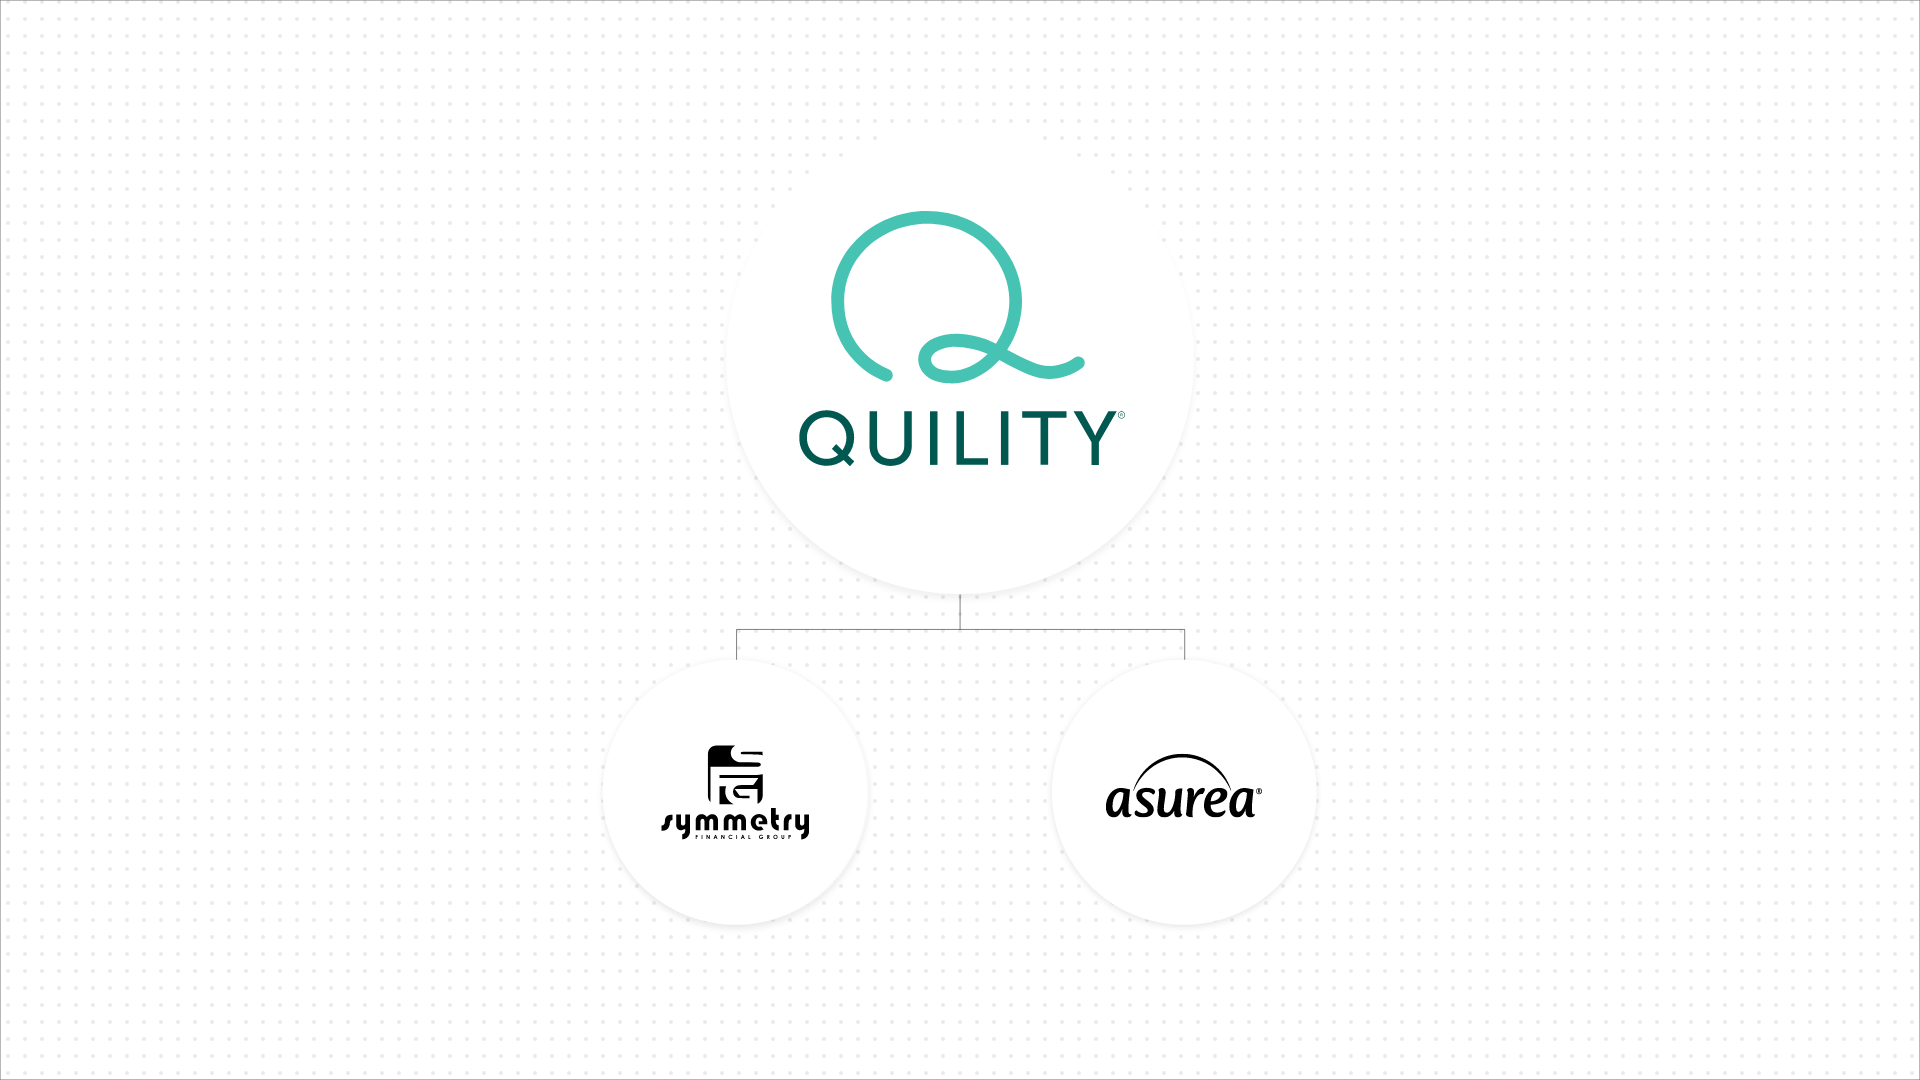 Symmetry Financial and Asurea combine into Quility